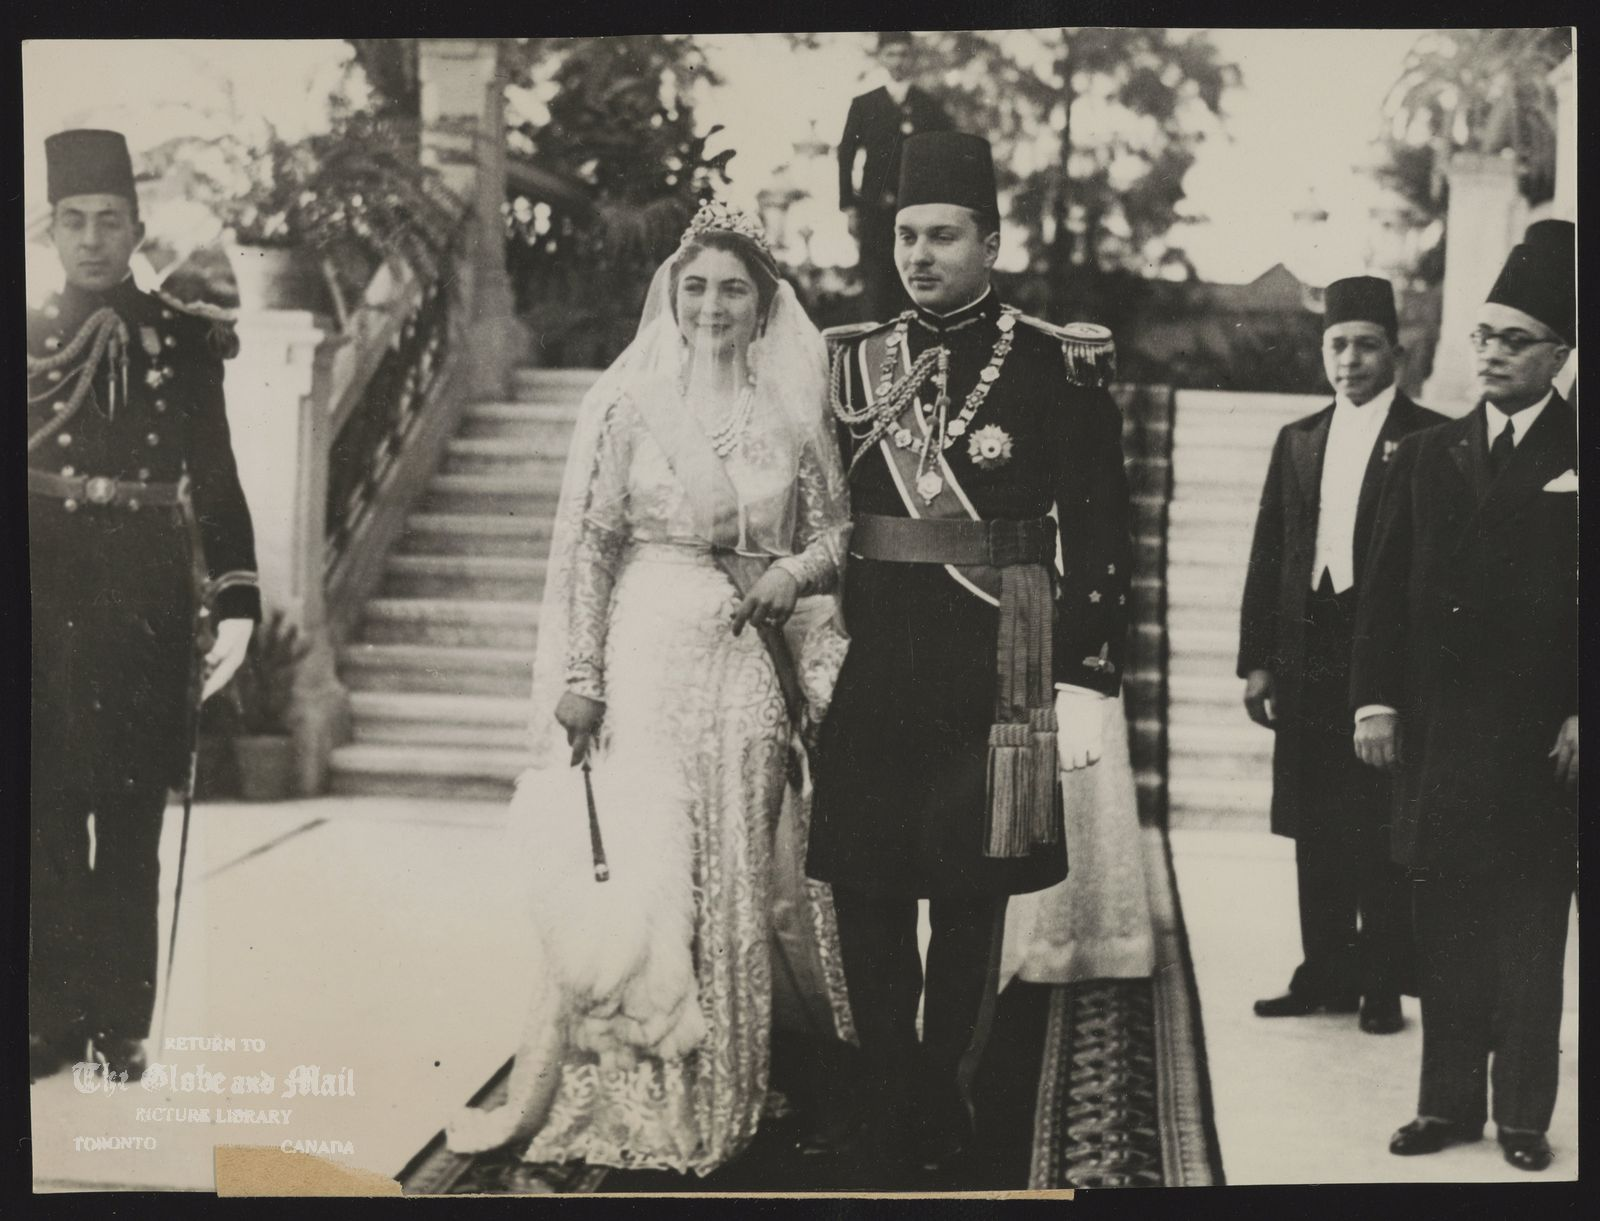 ASSOCIATED PRESS PHOTO - FROM LONDON. EGYPT WEDDING DAY PICTURE CAIRO EGYPT JANUARY 20: YOUTHFUL KING FAROUK OF EGYPT AND BEAUTIFUL 17 YEARS OLD MLLE. FARIDA ZULFICAR WERE MARRIED HERE TODAY AND IN ACCORDANCE WITH MOSLEM CUSTOM THE CEREMONY WAS NOT ATTENDED BY THE BRIDE WHO WAS SEATED IN A ROOM NEAR THE KING'S STUDY IN THE ROYAL PALACE HERE IN WHICH THE FORMALITIES WERE COMPLETED. ASSOCIATED PRESS PHOTO SHOWS: KING FAROUK AND QUEEN FARIDA PHOTOGRAPHED ON THE DAY OF THEIR MARRIAGE. BEGY 177874 25138 P. ALL-EX-B.F.D.P.